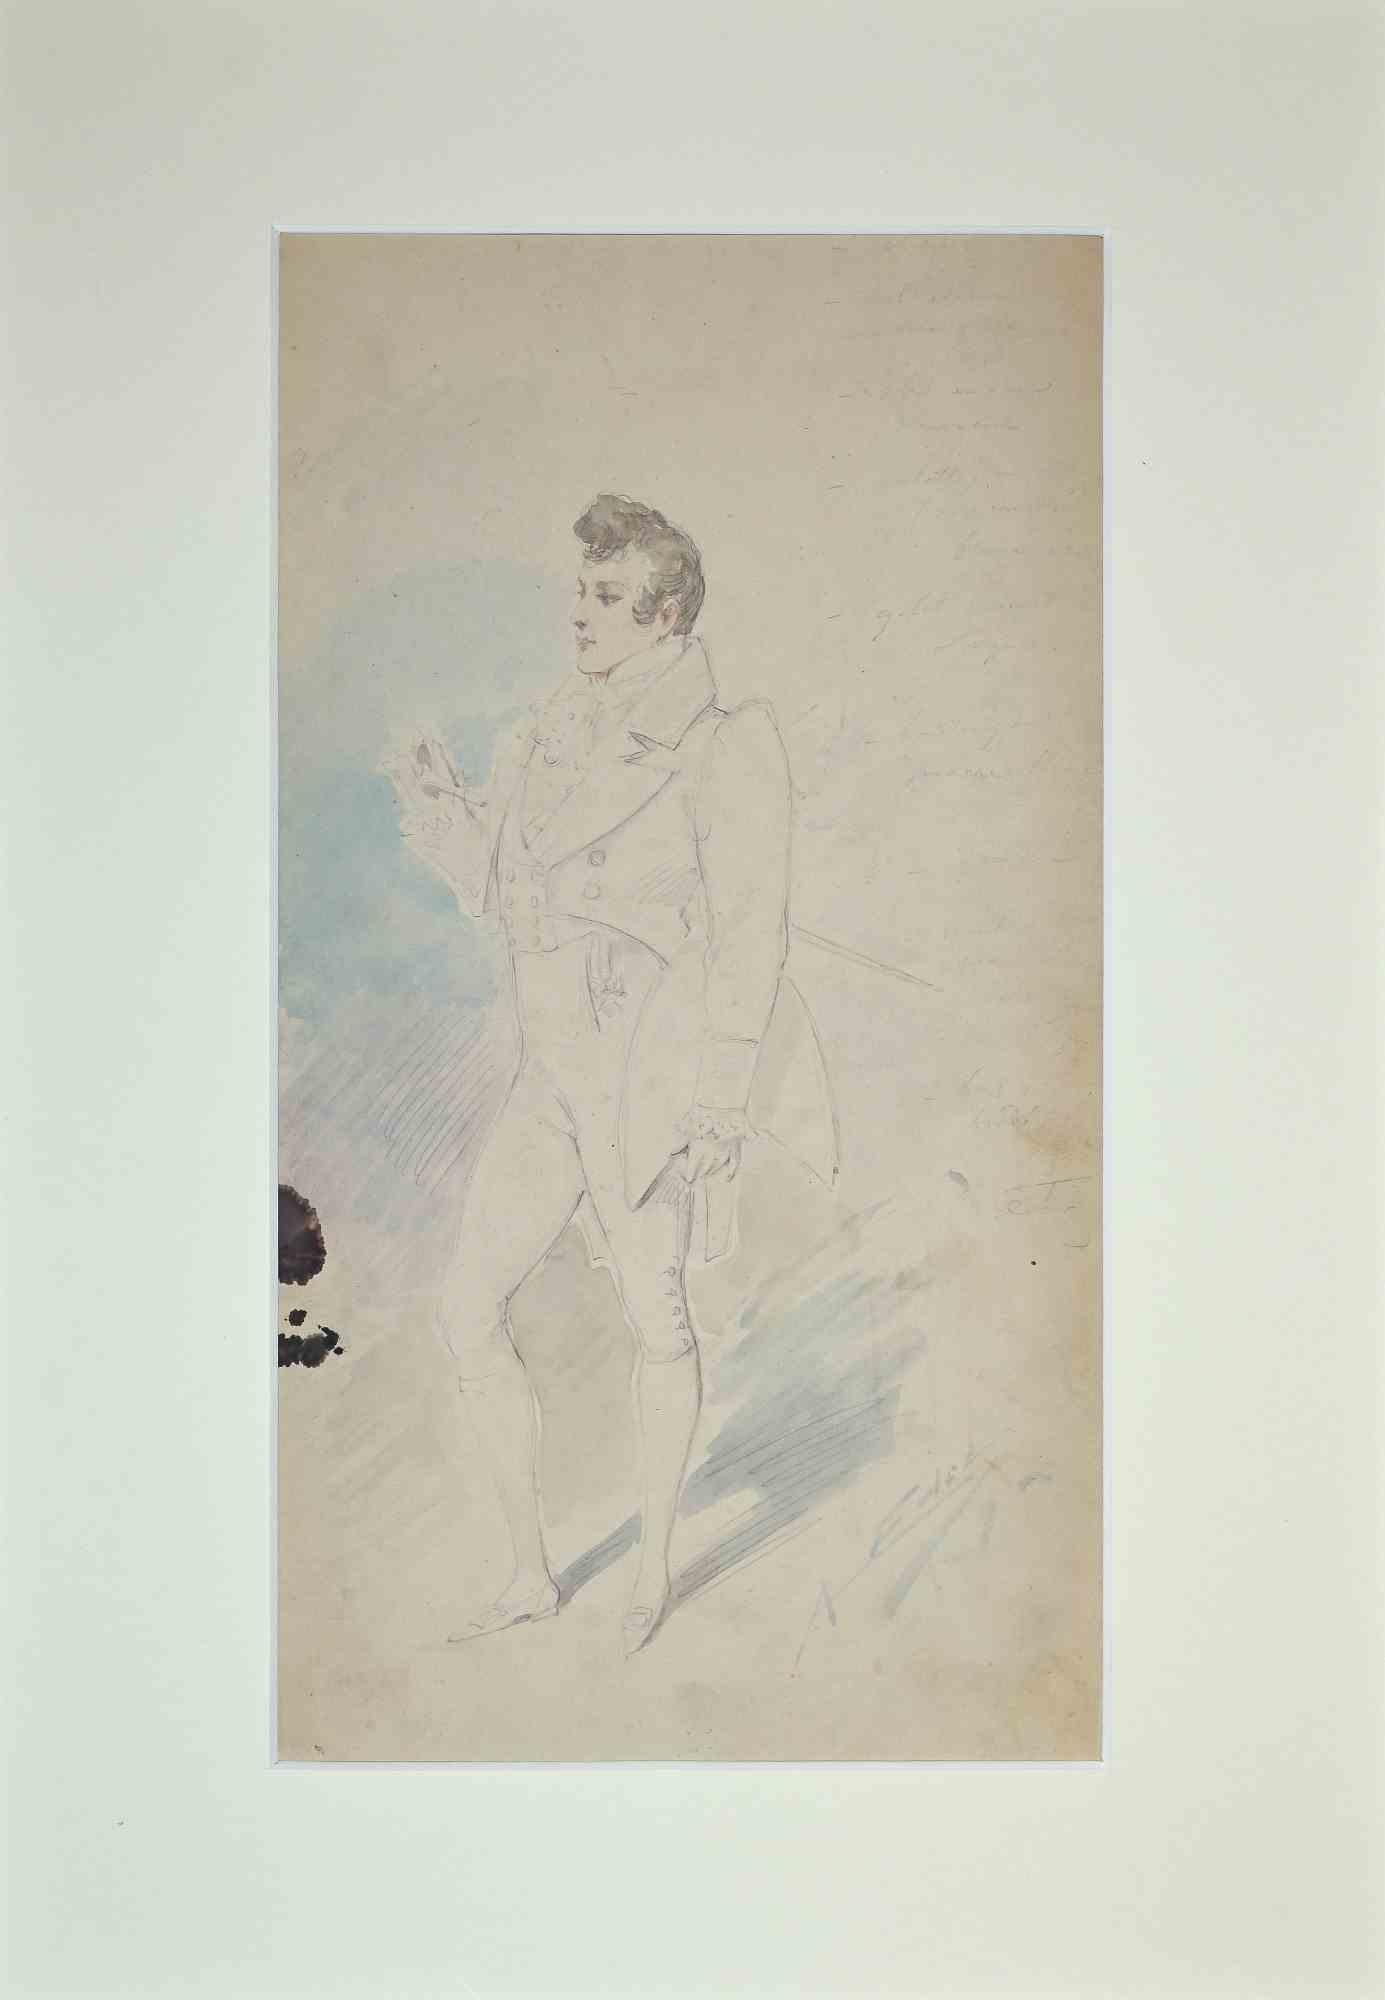 Theatrical Costume - Original Pencil Drawing by Alfredo Edel - 1895